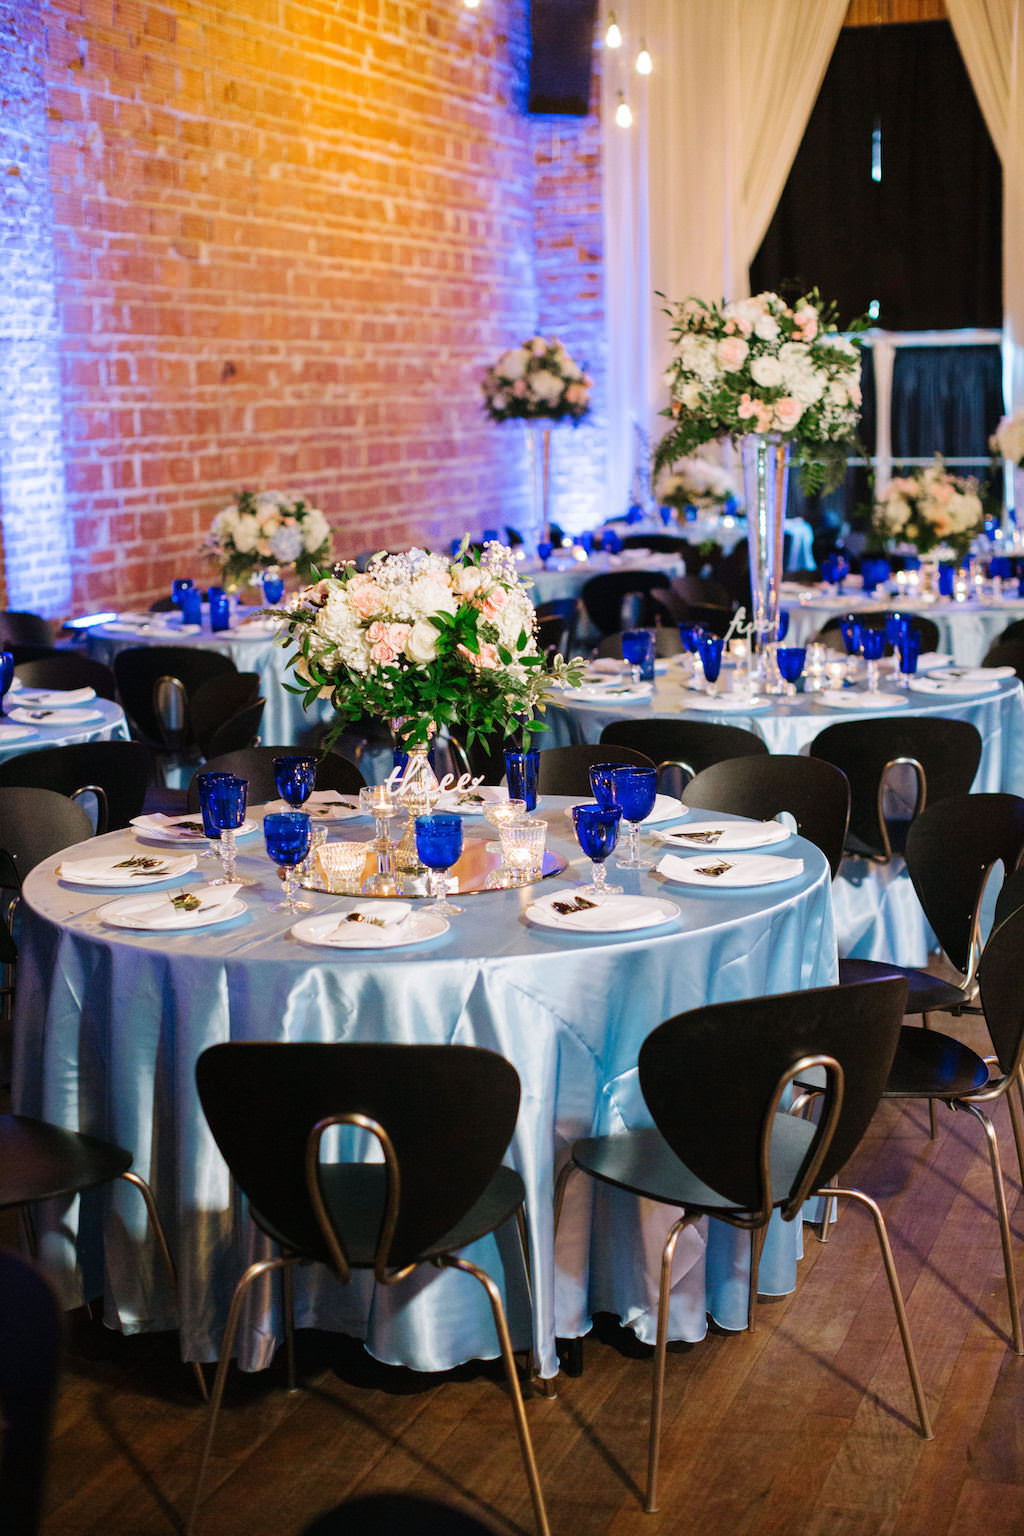 Modern, Romantic Reception and Wedding Decor, Low Floral Centerpieces with White, Peach, Pink, Ivory Flowers, Round Tables with Silver Tablecloths, Blue Stemware | Tampa Bay Historic Wedding Venue NOVA 535 in Downtown St. Pete